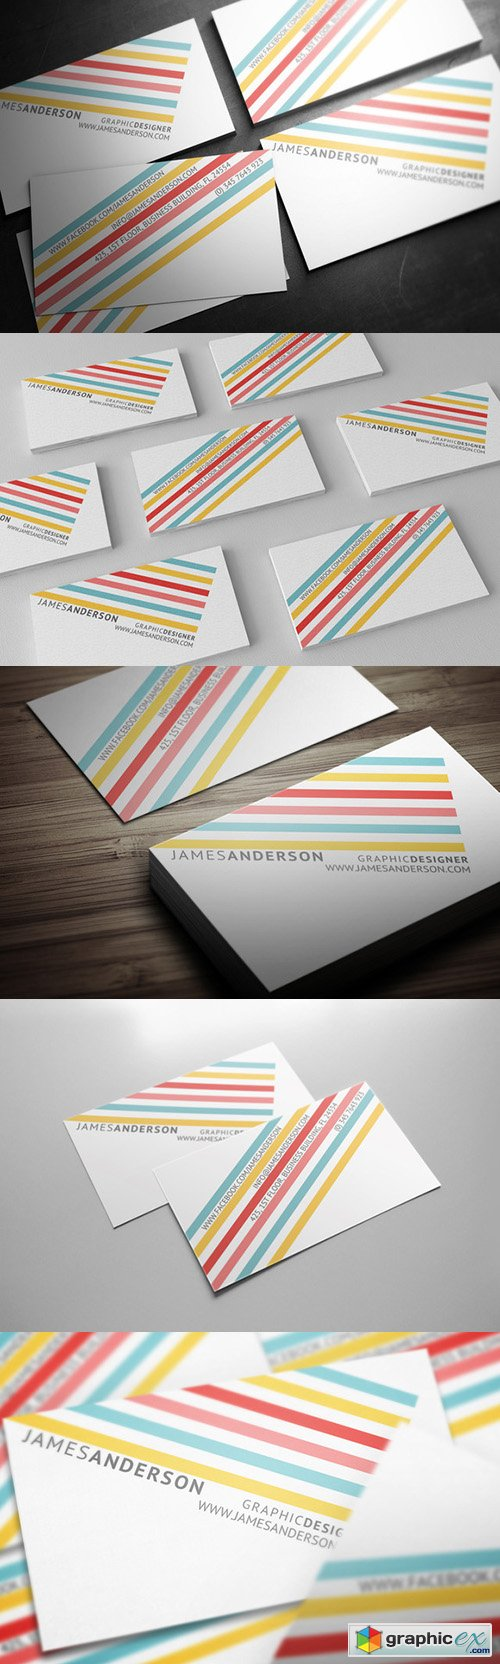 Color Stripes - Business Card